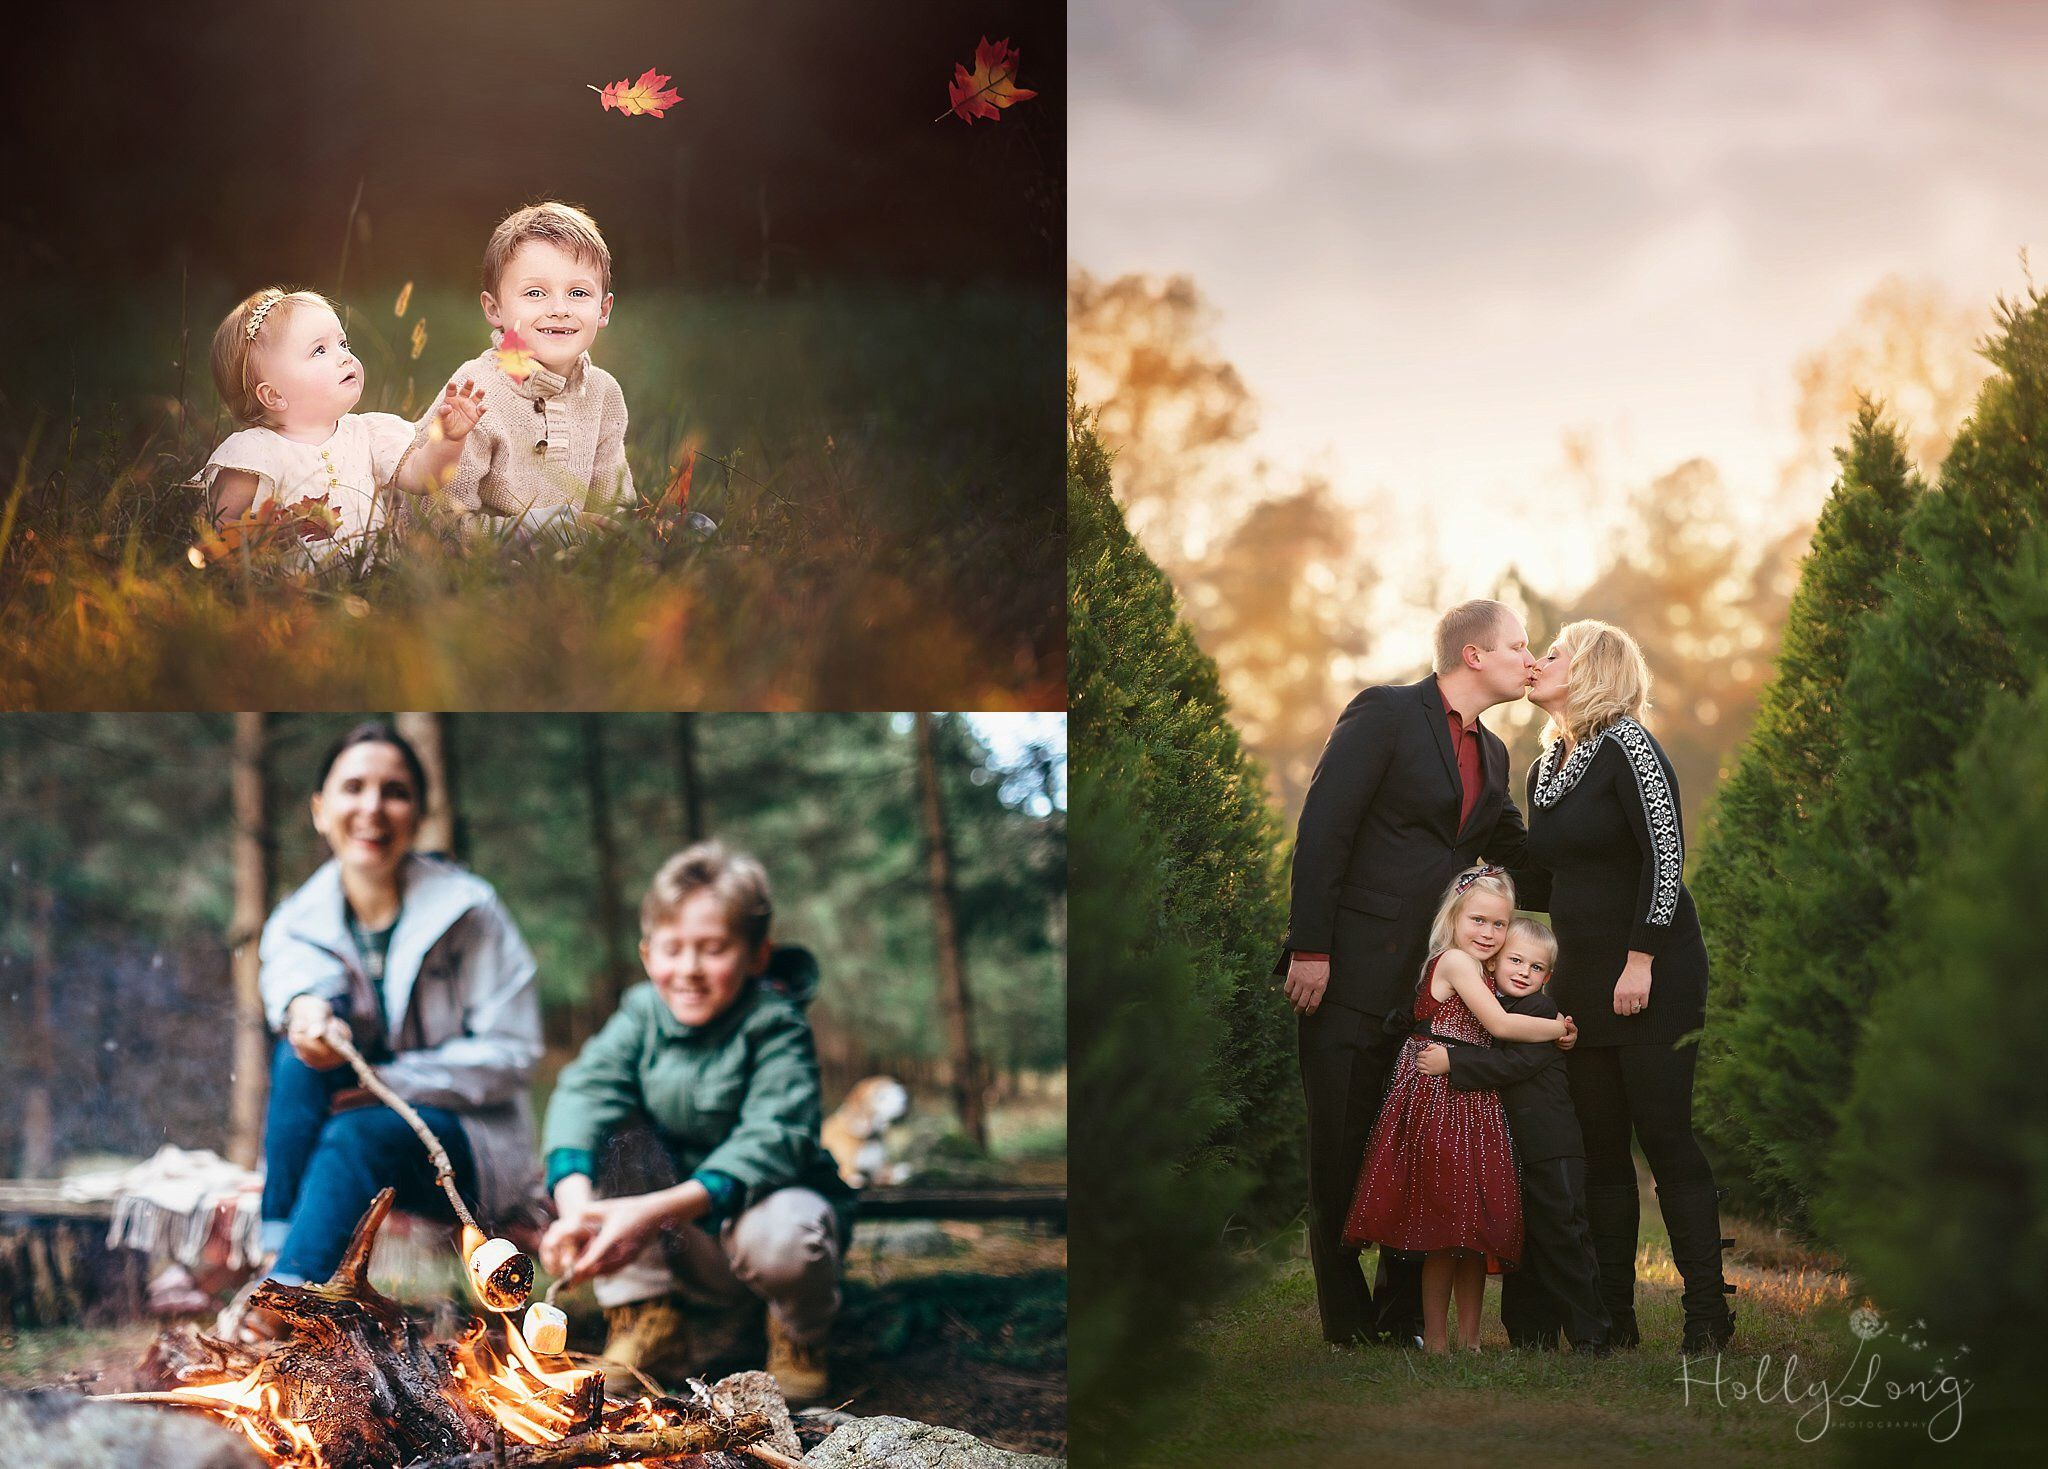 I will be hosting Fall and Winter mini sessions this year